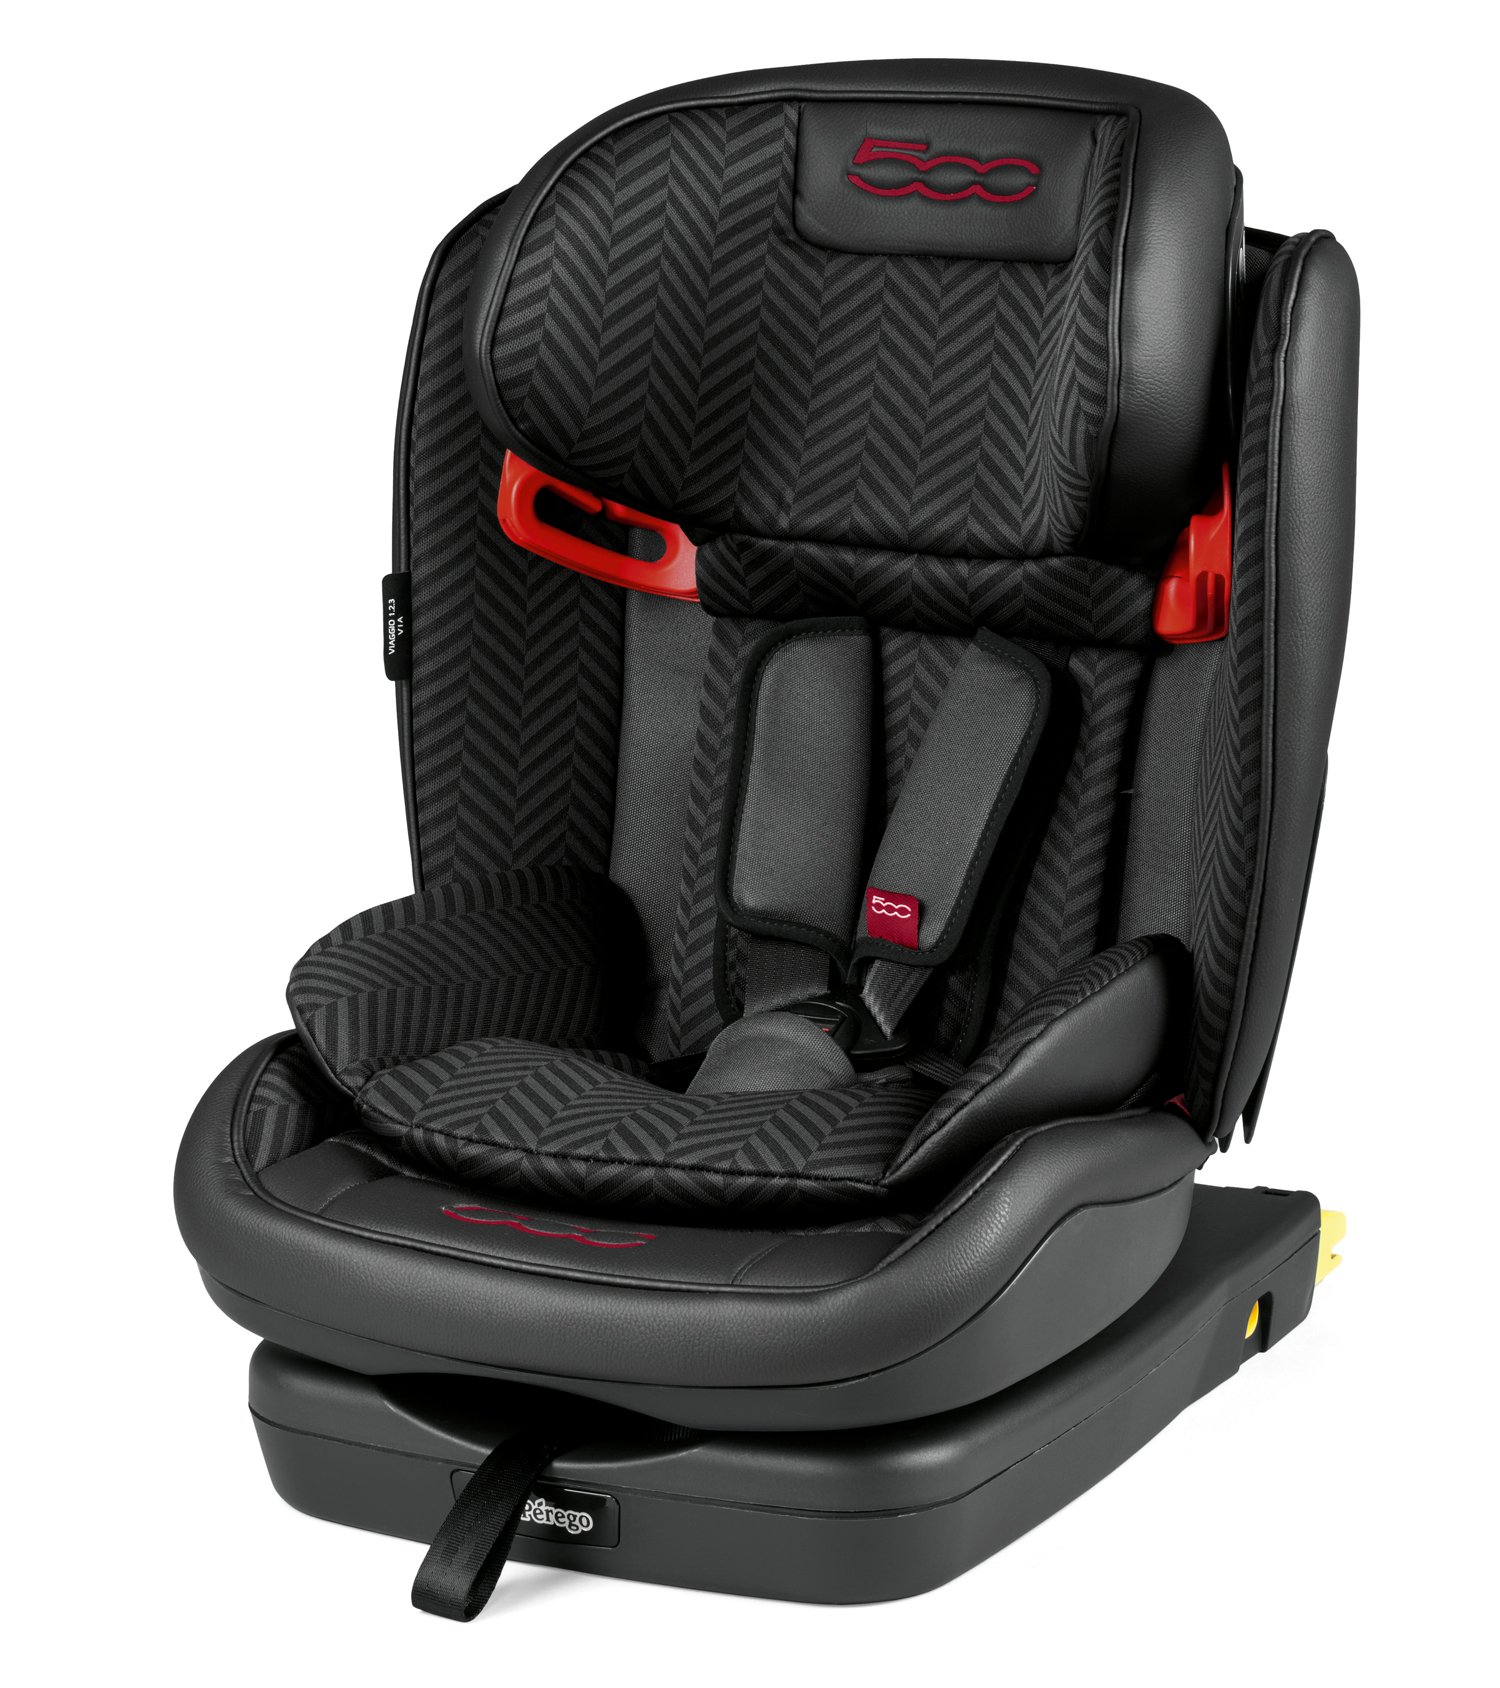 peg perego car seat viaggio 1 2 3 via 2018 fiat 500 buy at kidsroom car seats. Black Bedroom Furniture Sets. Home Design Ideas